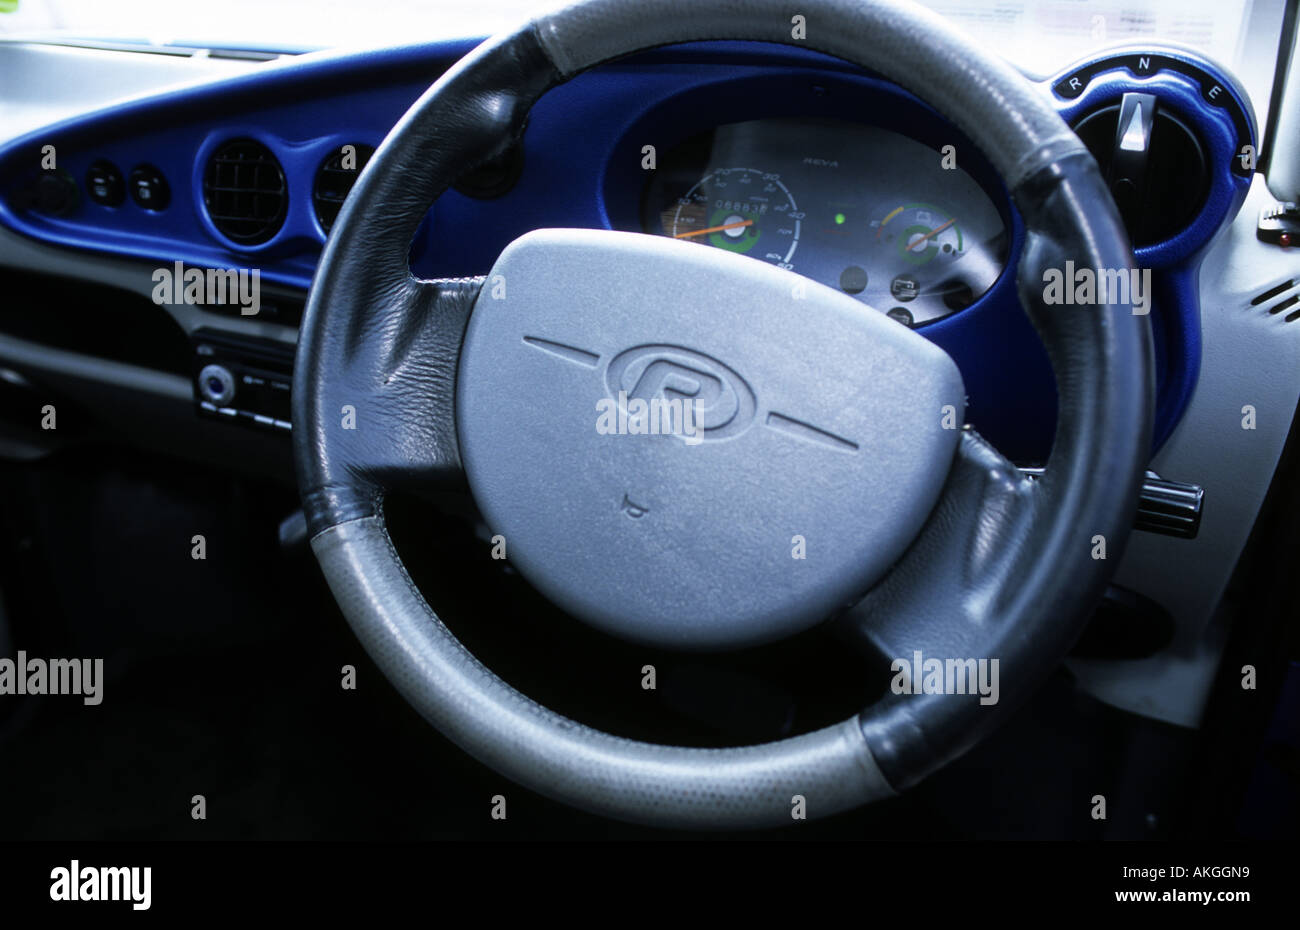 Dashboard Of A Reva G Wiz Electric Car Stock Photo Royalty Free